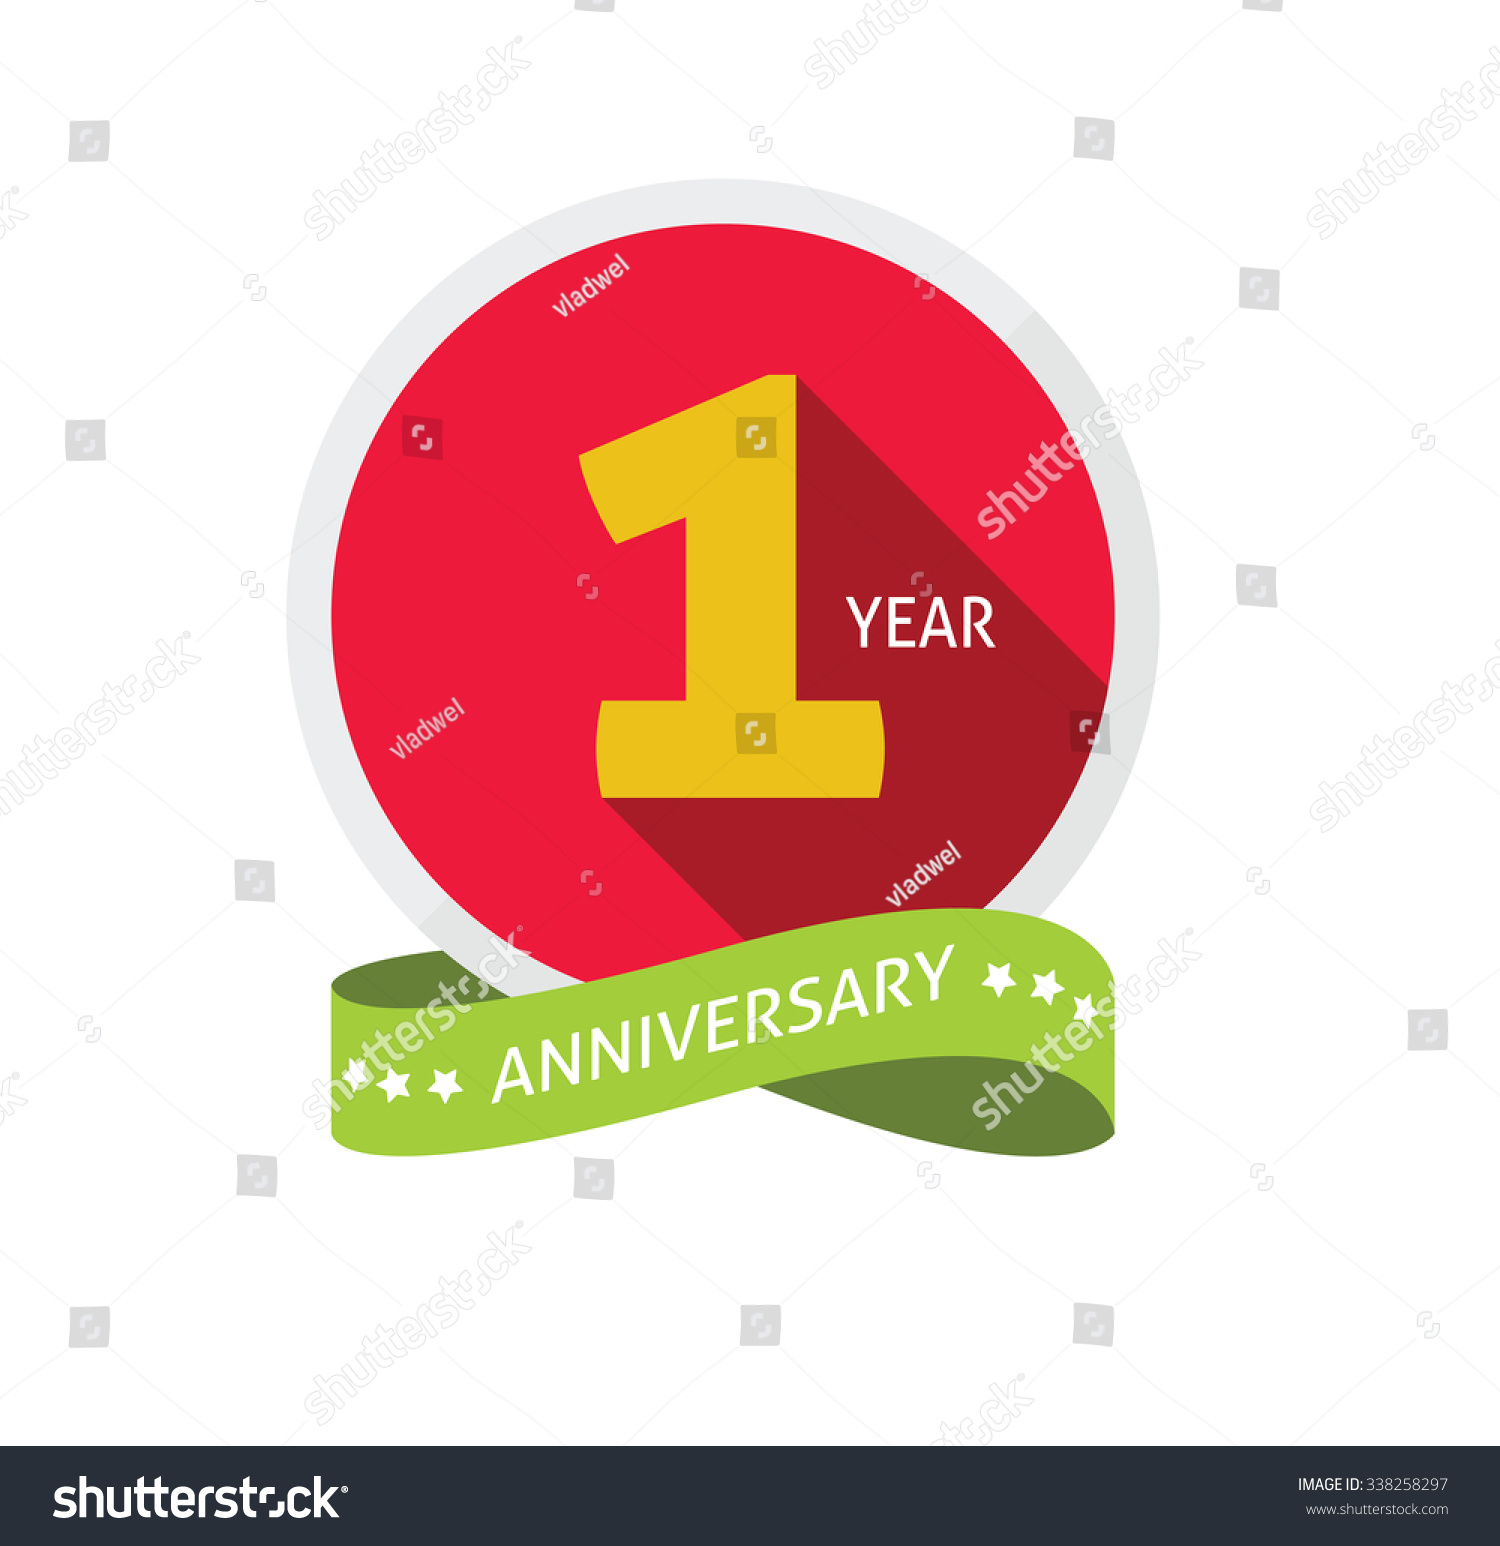 St anniversary logo template shadow on stock vector